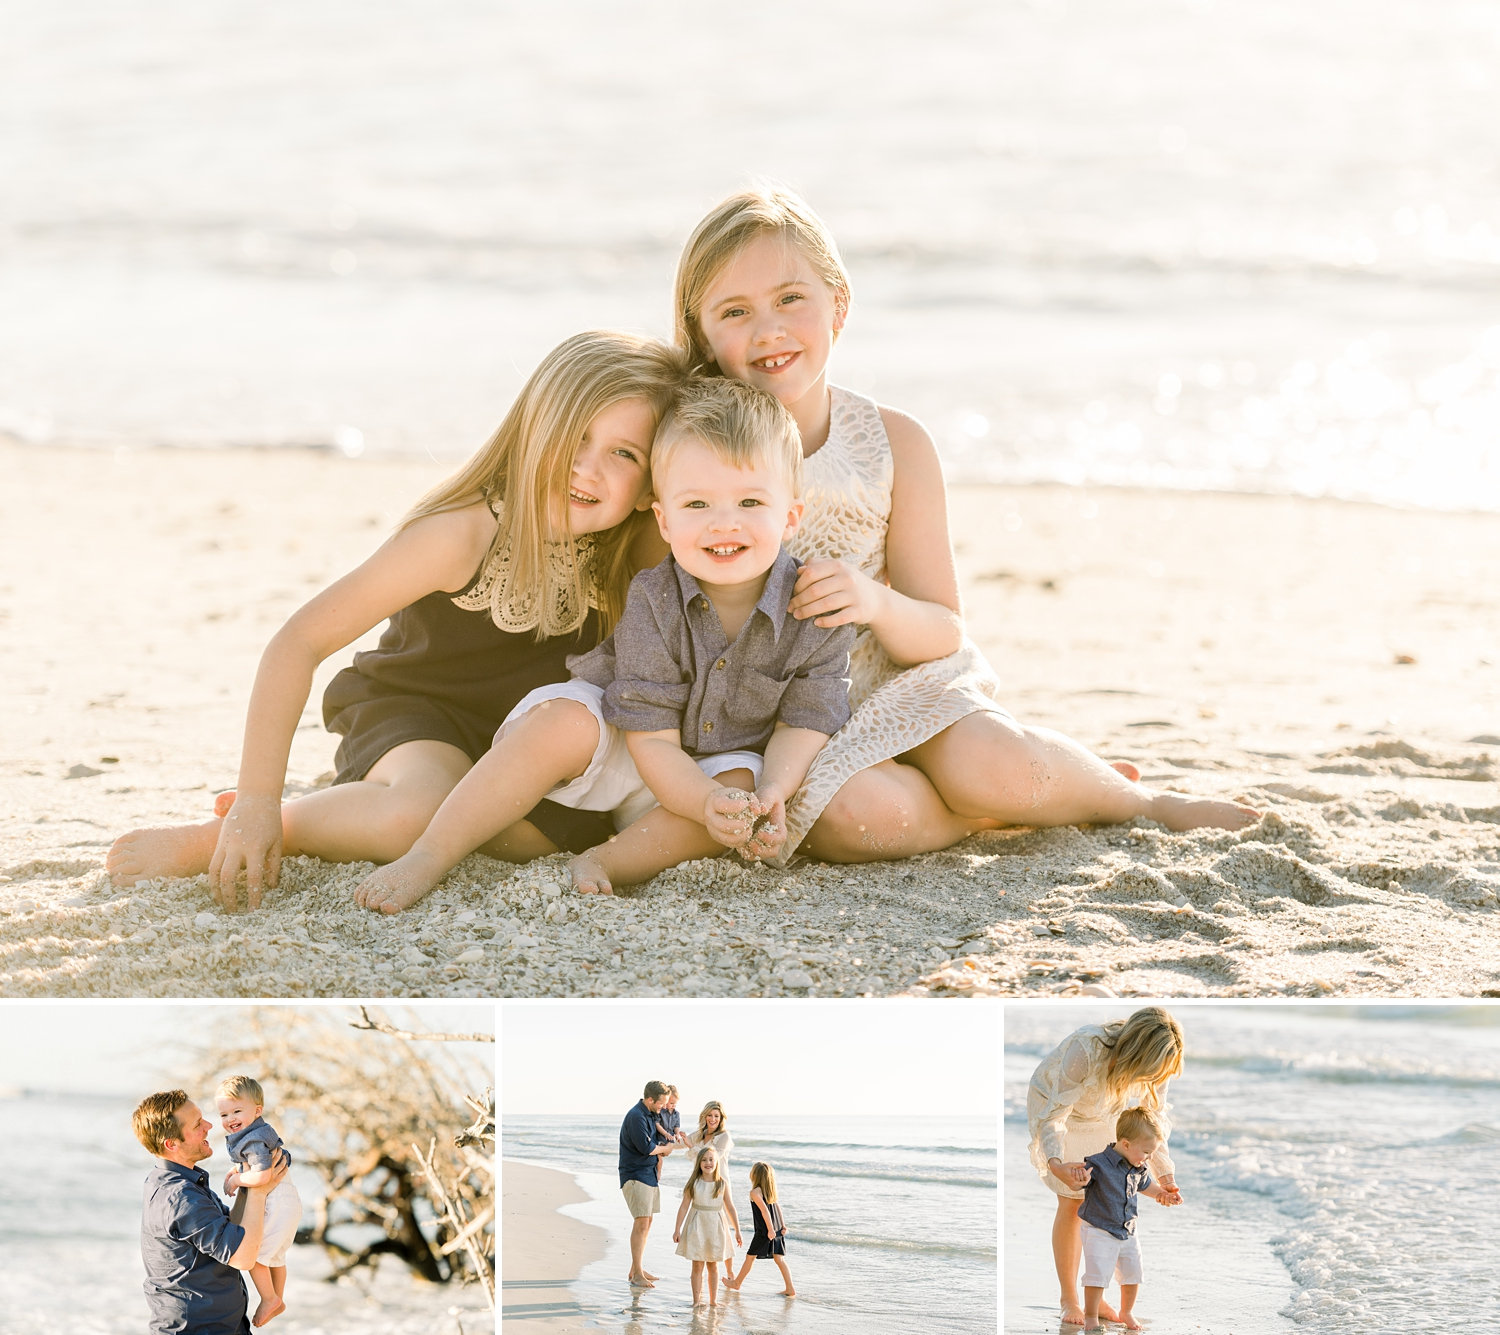 exquisite family beach portraiture, Naples family photographer, Ryaphotos